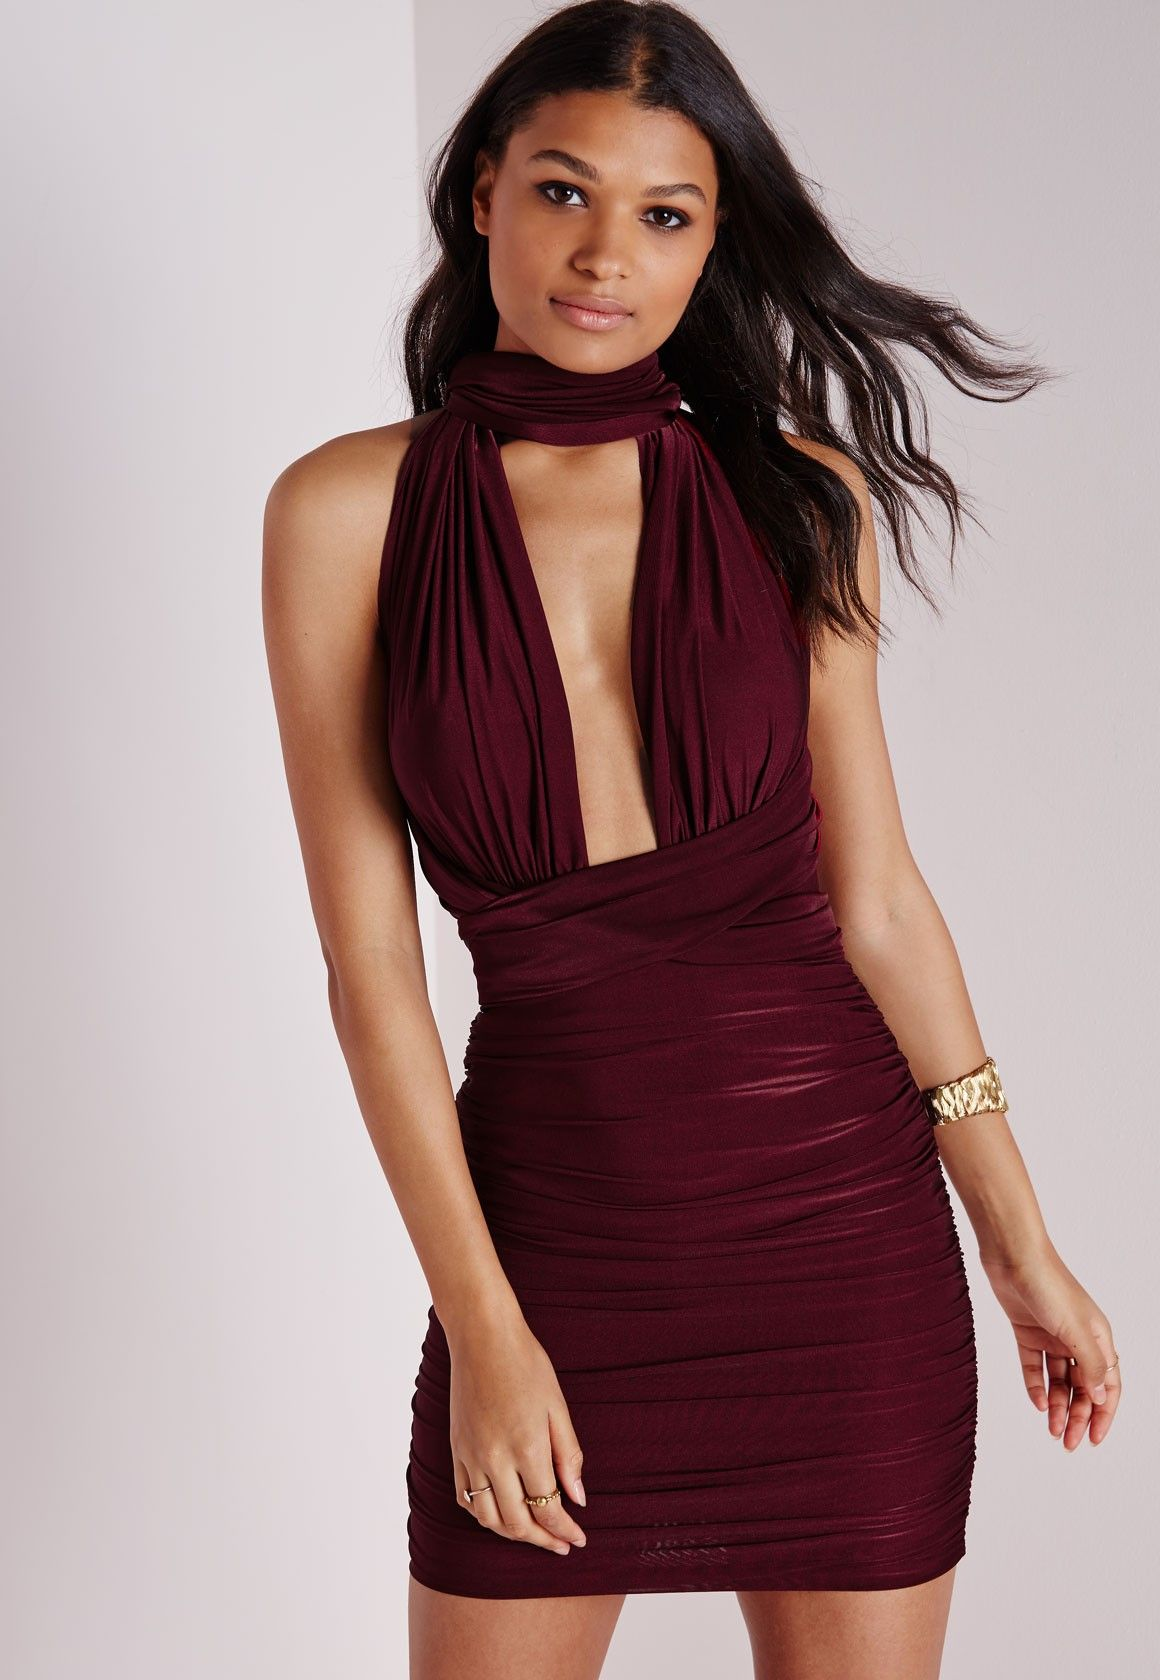 ddc6964c55 Missguided - Do It Any Way Multiway Slinky Bodycon Dress Burgundy ...